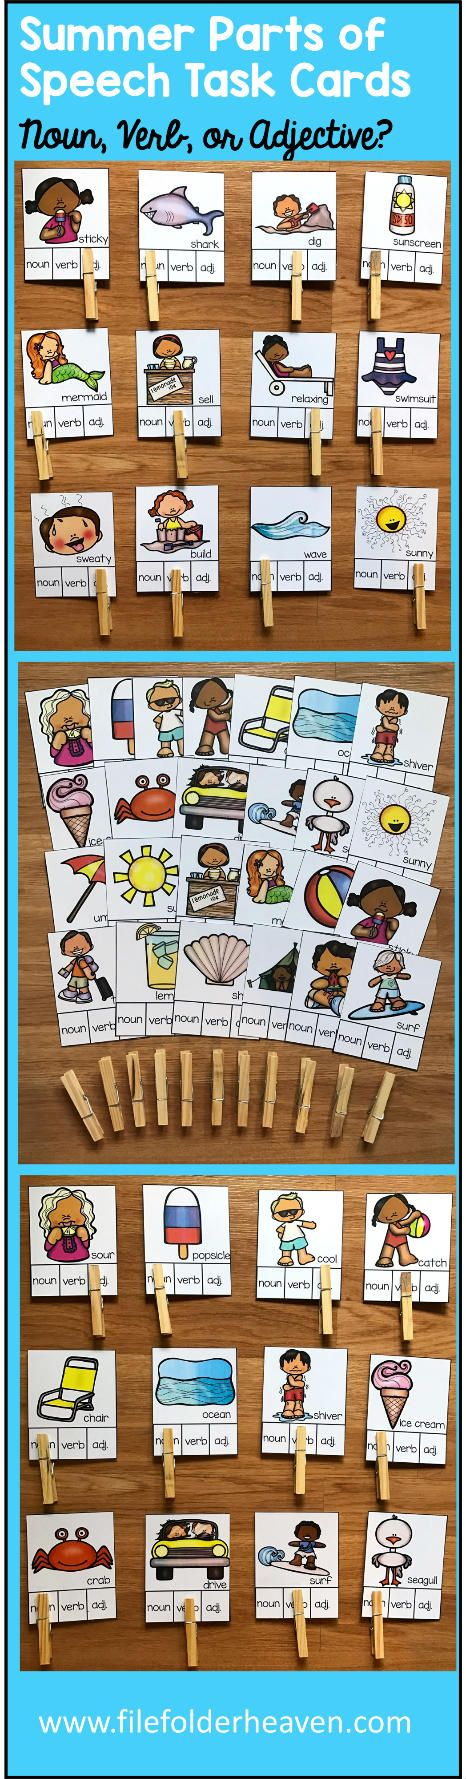 These Summer Parts of Speech Task Cards focus on identifying parts of speech: nouns, verbs, and adjectives, using summer themed vocabulary. There a total of 40 task cards included. Students will look at each summer themed picture and word, and determine whether it is a noun, verb, or adjective. Use these task cards in independent workstations, learning centers or a small group setting. Students may complete them as a clothespin task, paperclip task, marker task, or answer the questions…